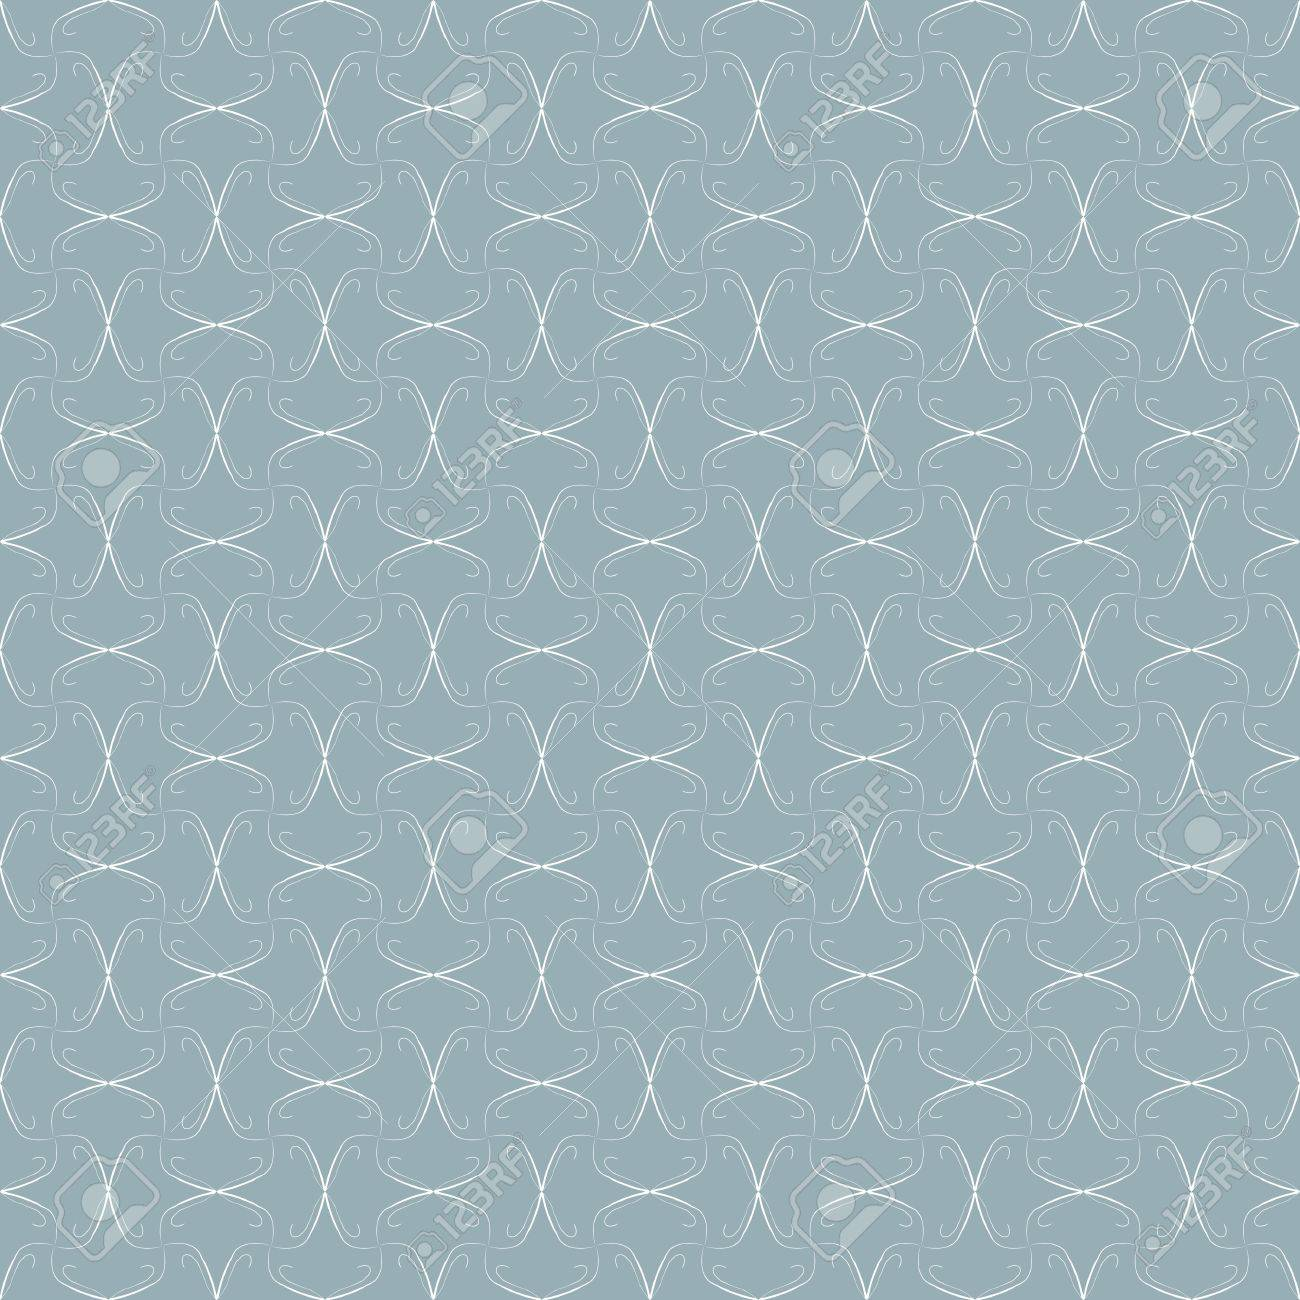 linear pattern with gray colors, ideal for a website background or holiday wrapping paper or wedding invitation background Stock Vector - 17112678